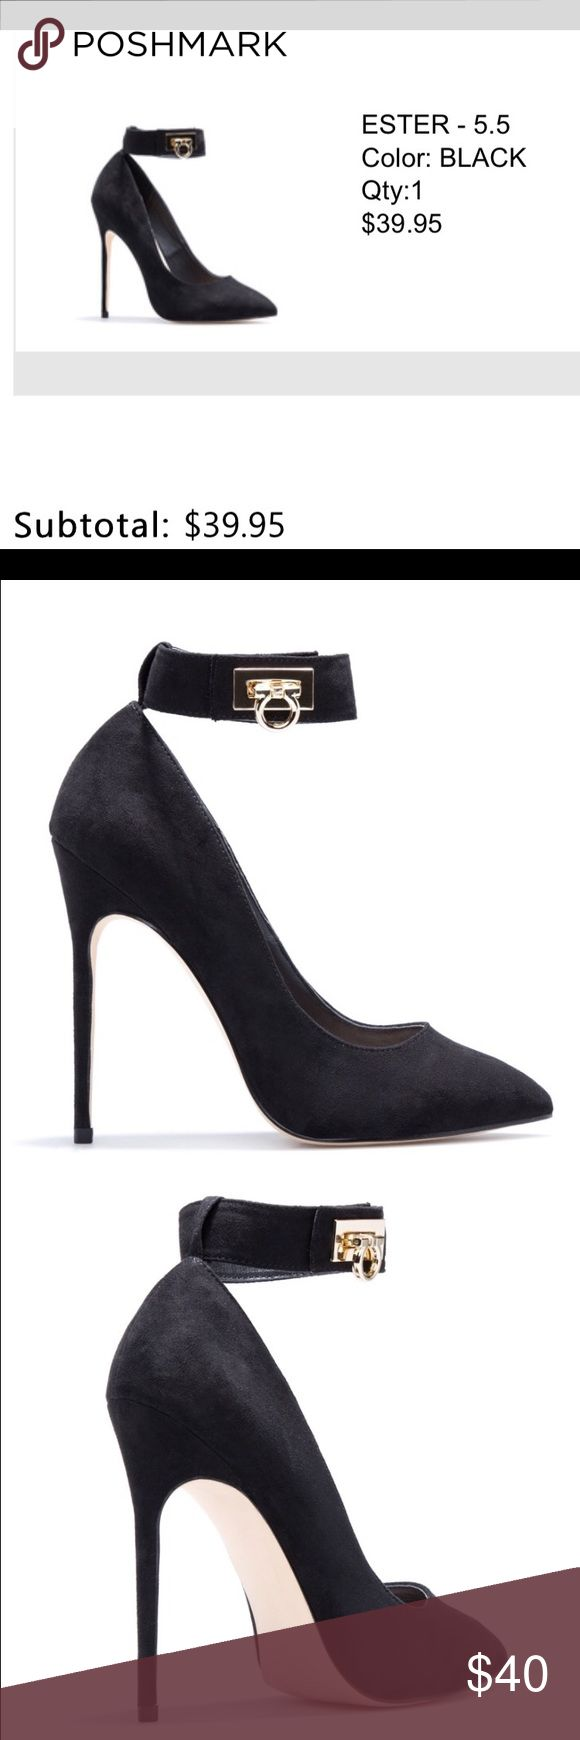 🍀!!!! Ester black heels!!! 🍀 Shoe Dazzle Ester Black Pumps. New. Never worn with box and tags!! Looks nice with any clothes!!! Shoe Dazzle Shoes Heels